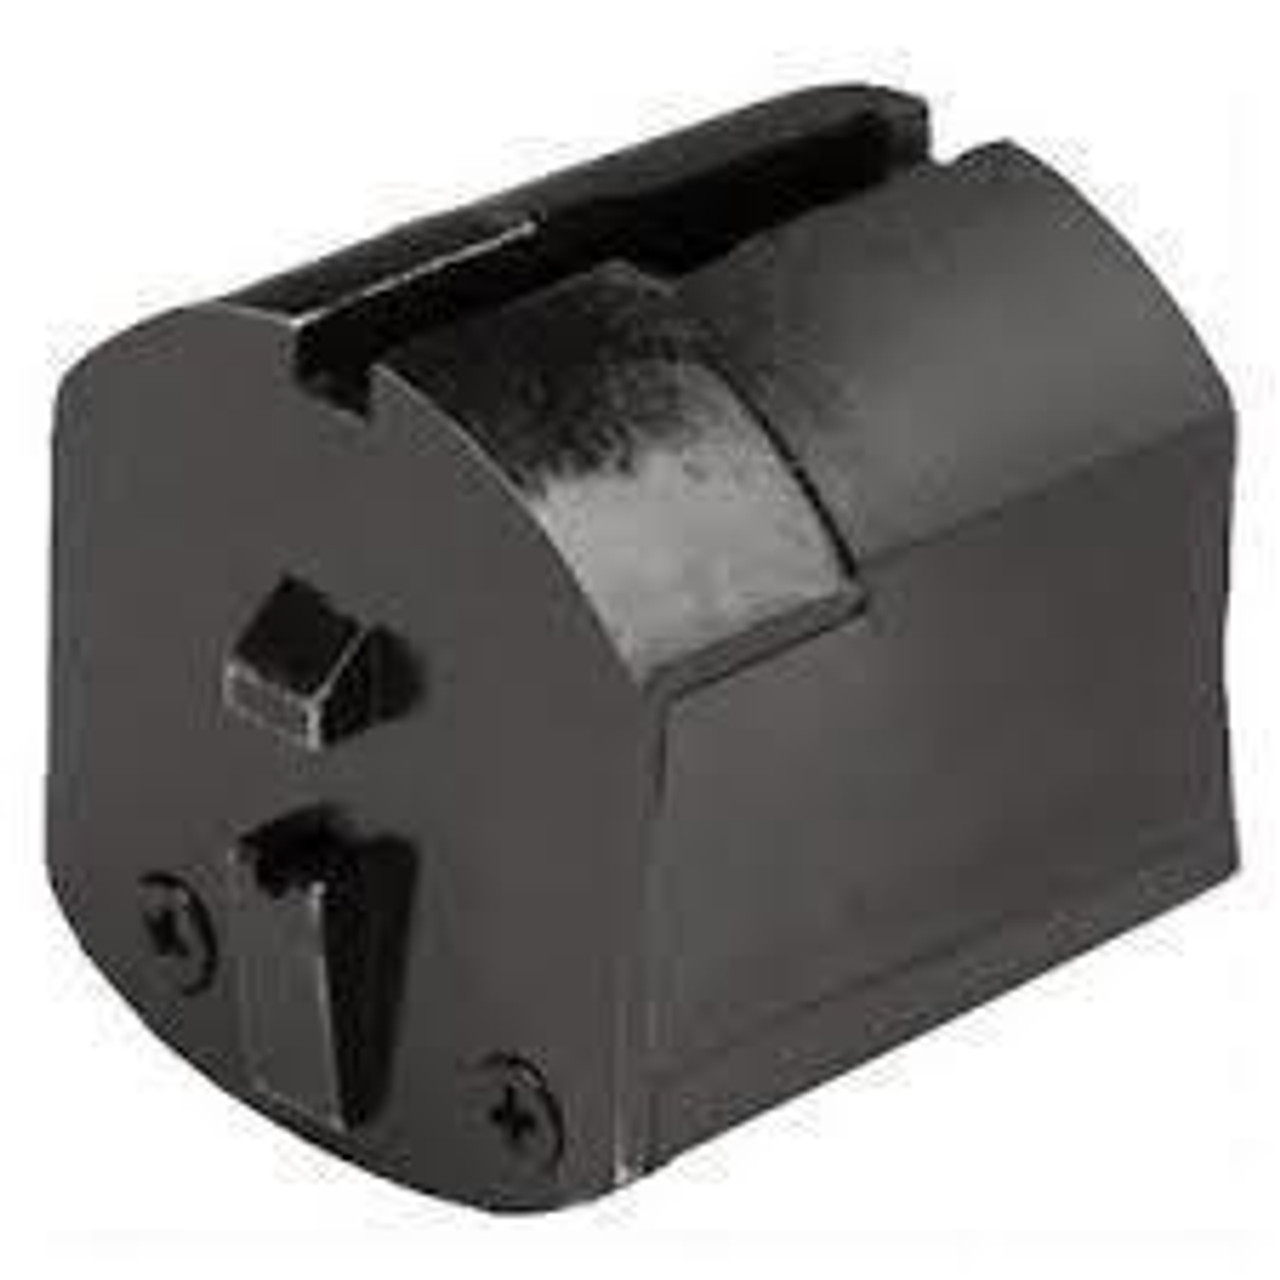 Savage A22 Magnum 10 Round Rotary Magazine .22 WMR 10 Rounds Synthetic Black Finish